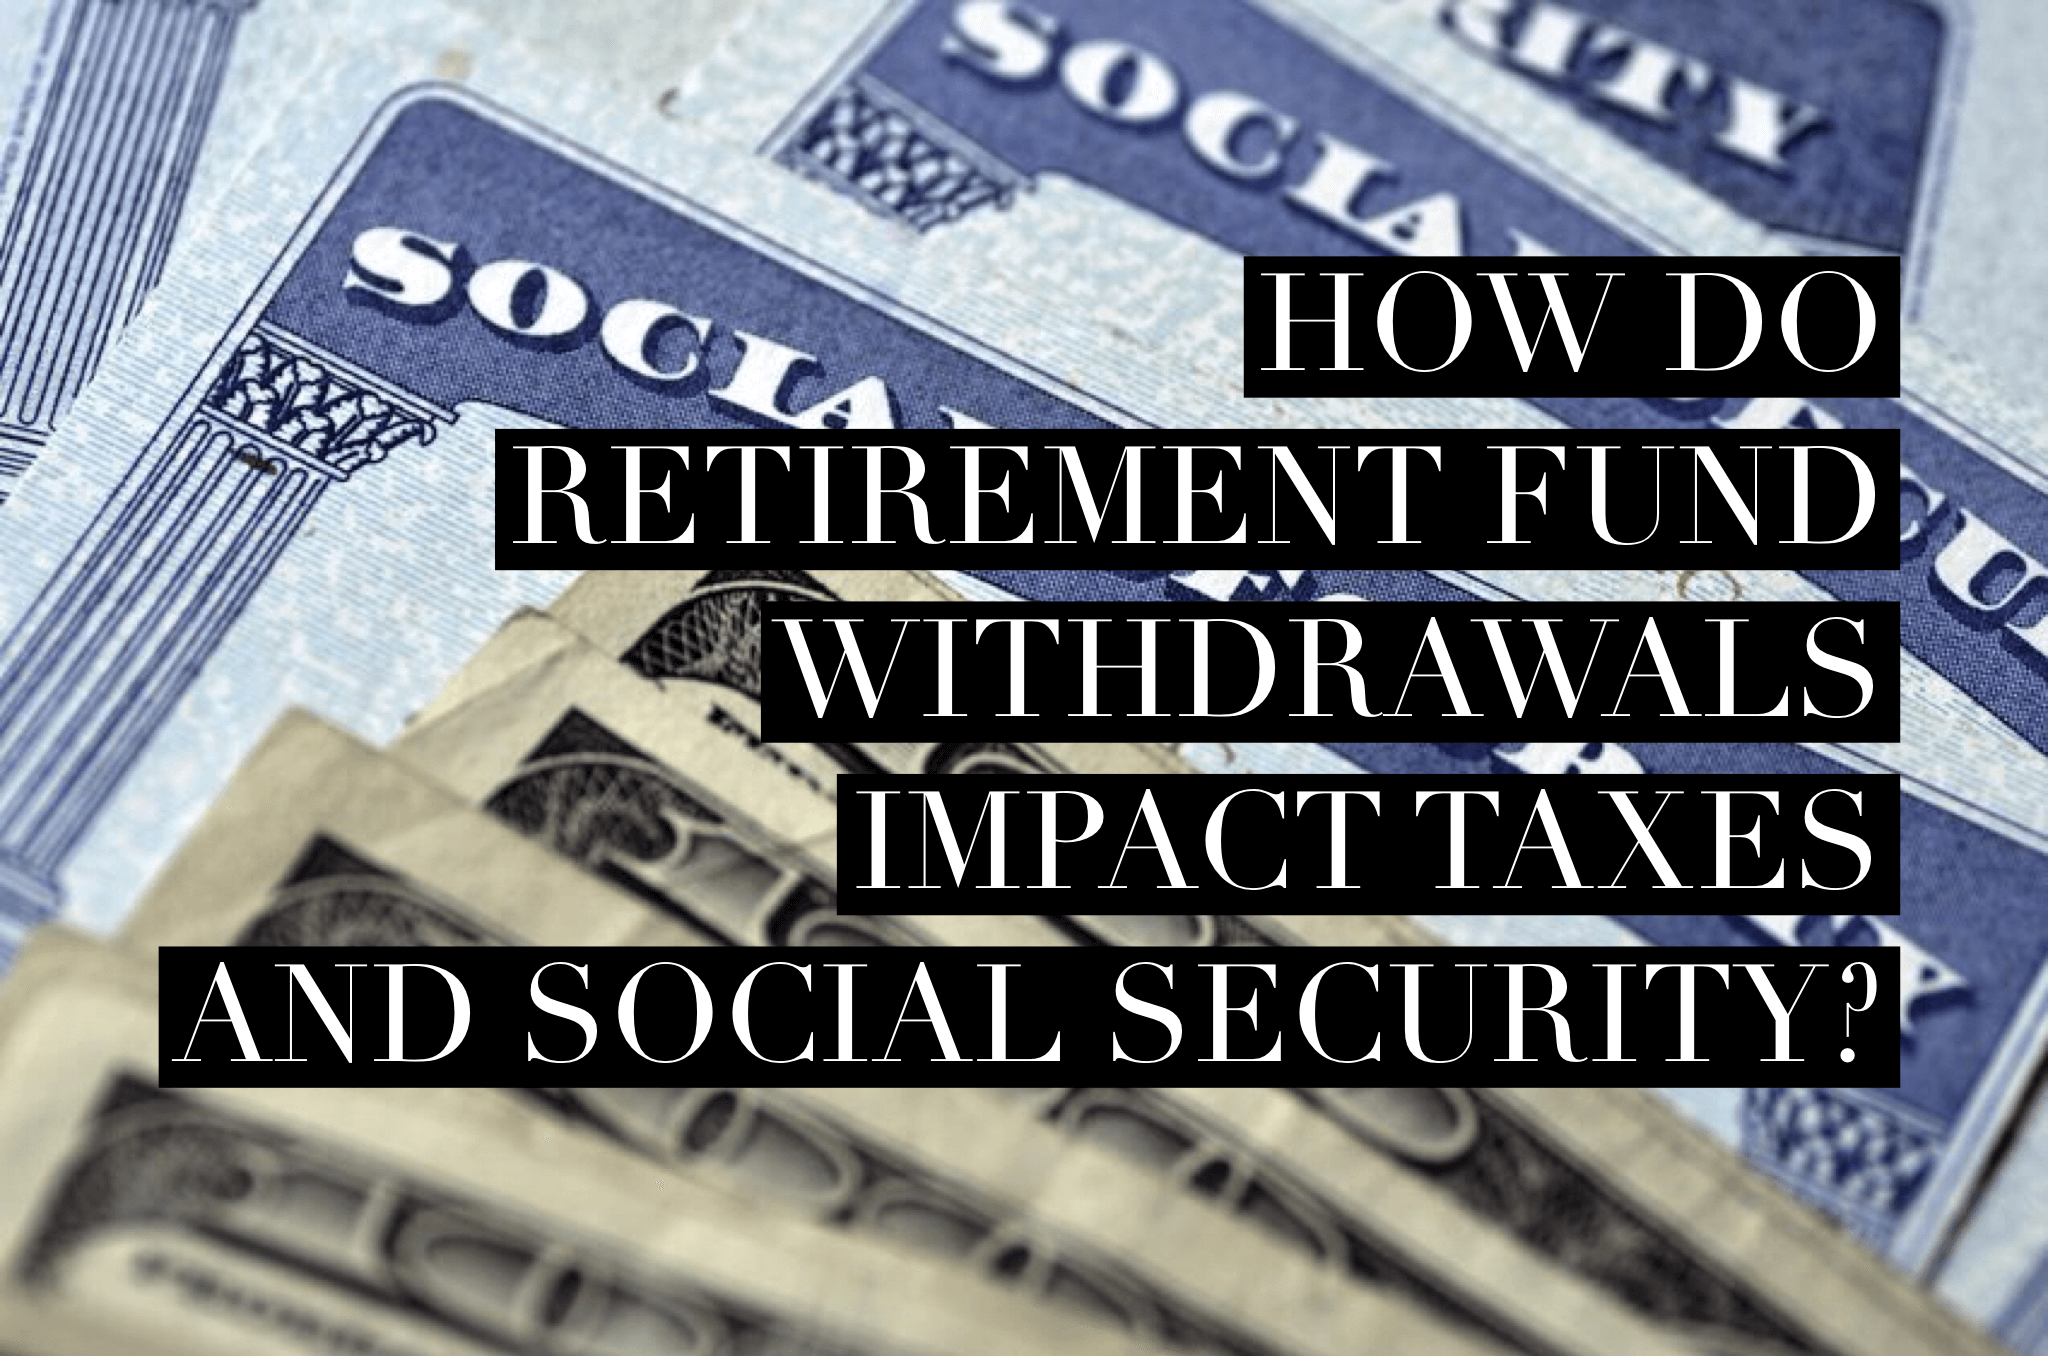 How Do Retirement Fund Withdrawals Impact Social Security?